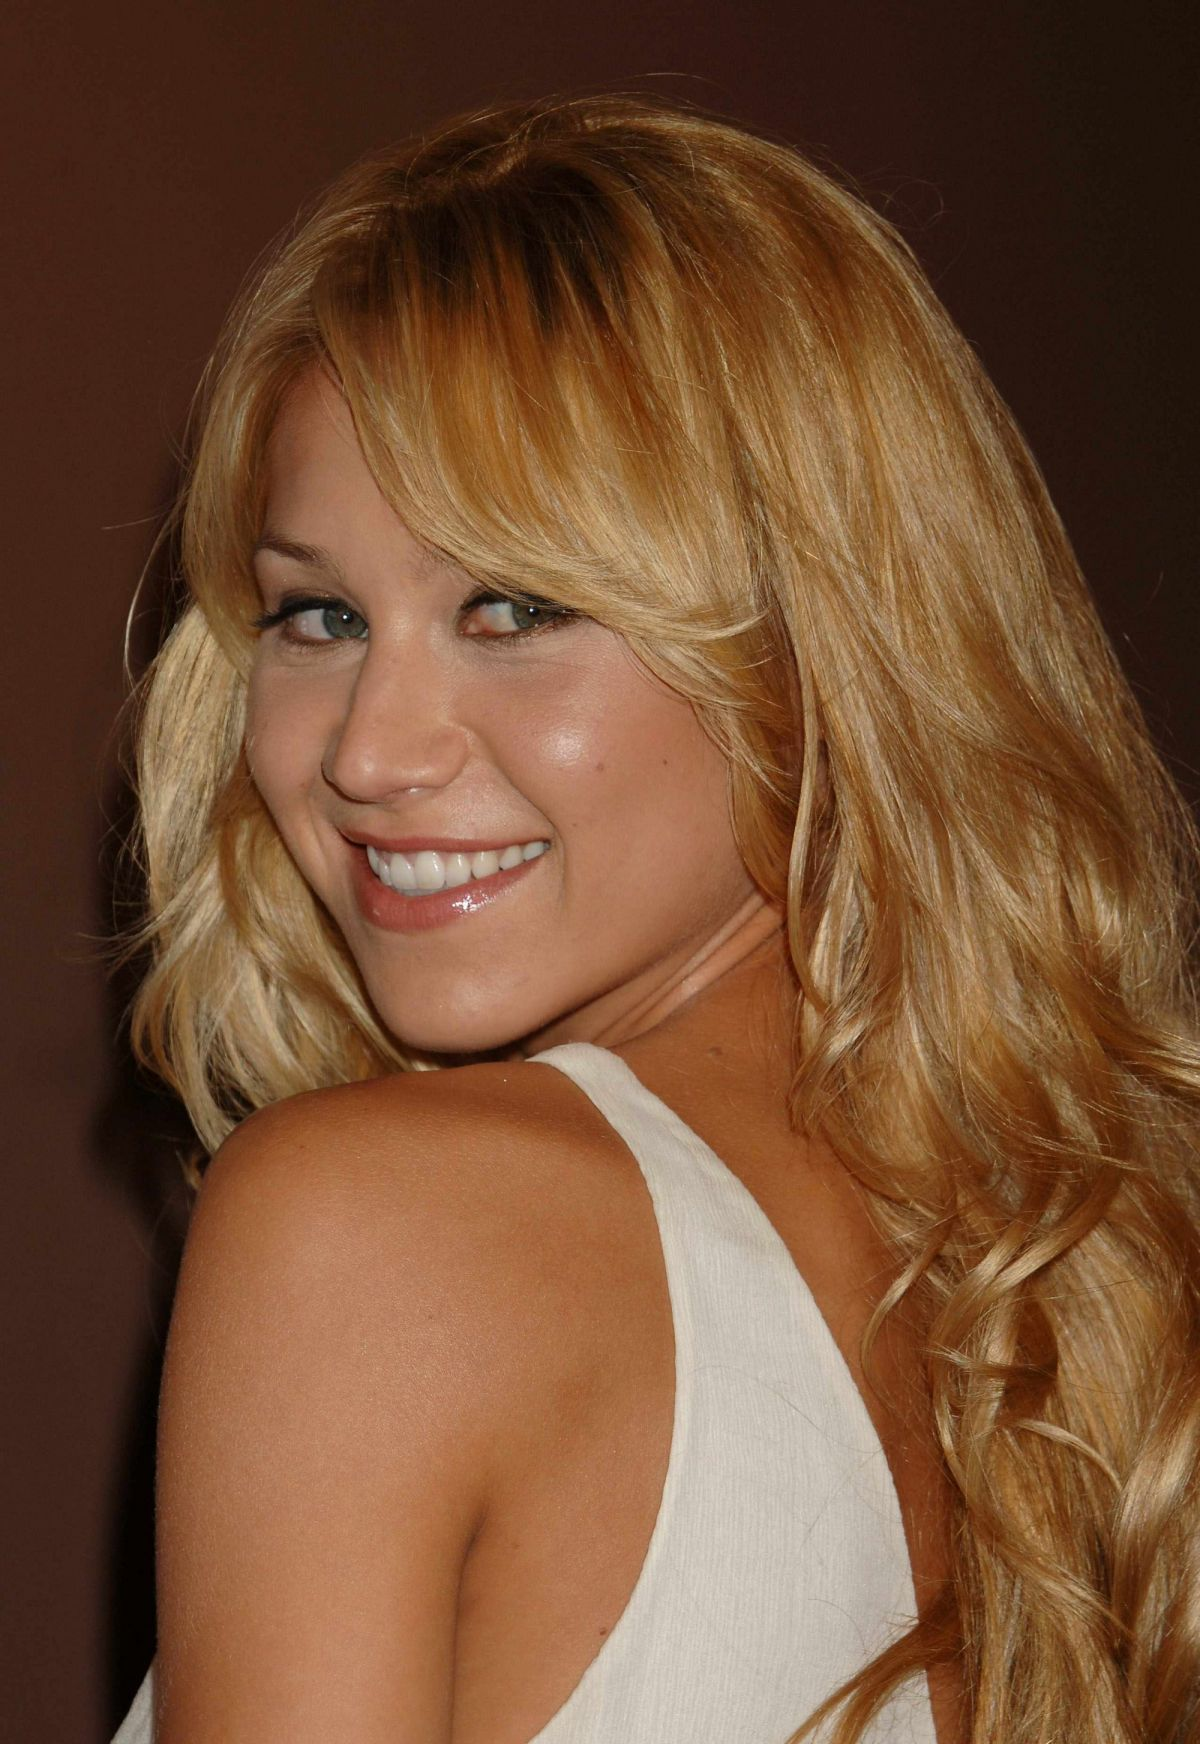 The Best from Past - ANNA KOURNIKOVA at Teen People 2006 Party